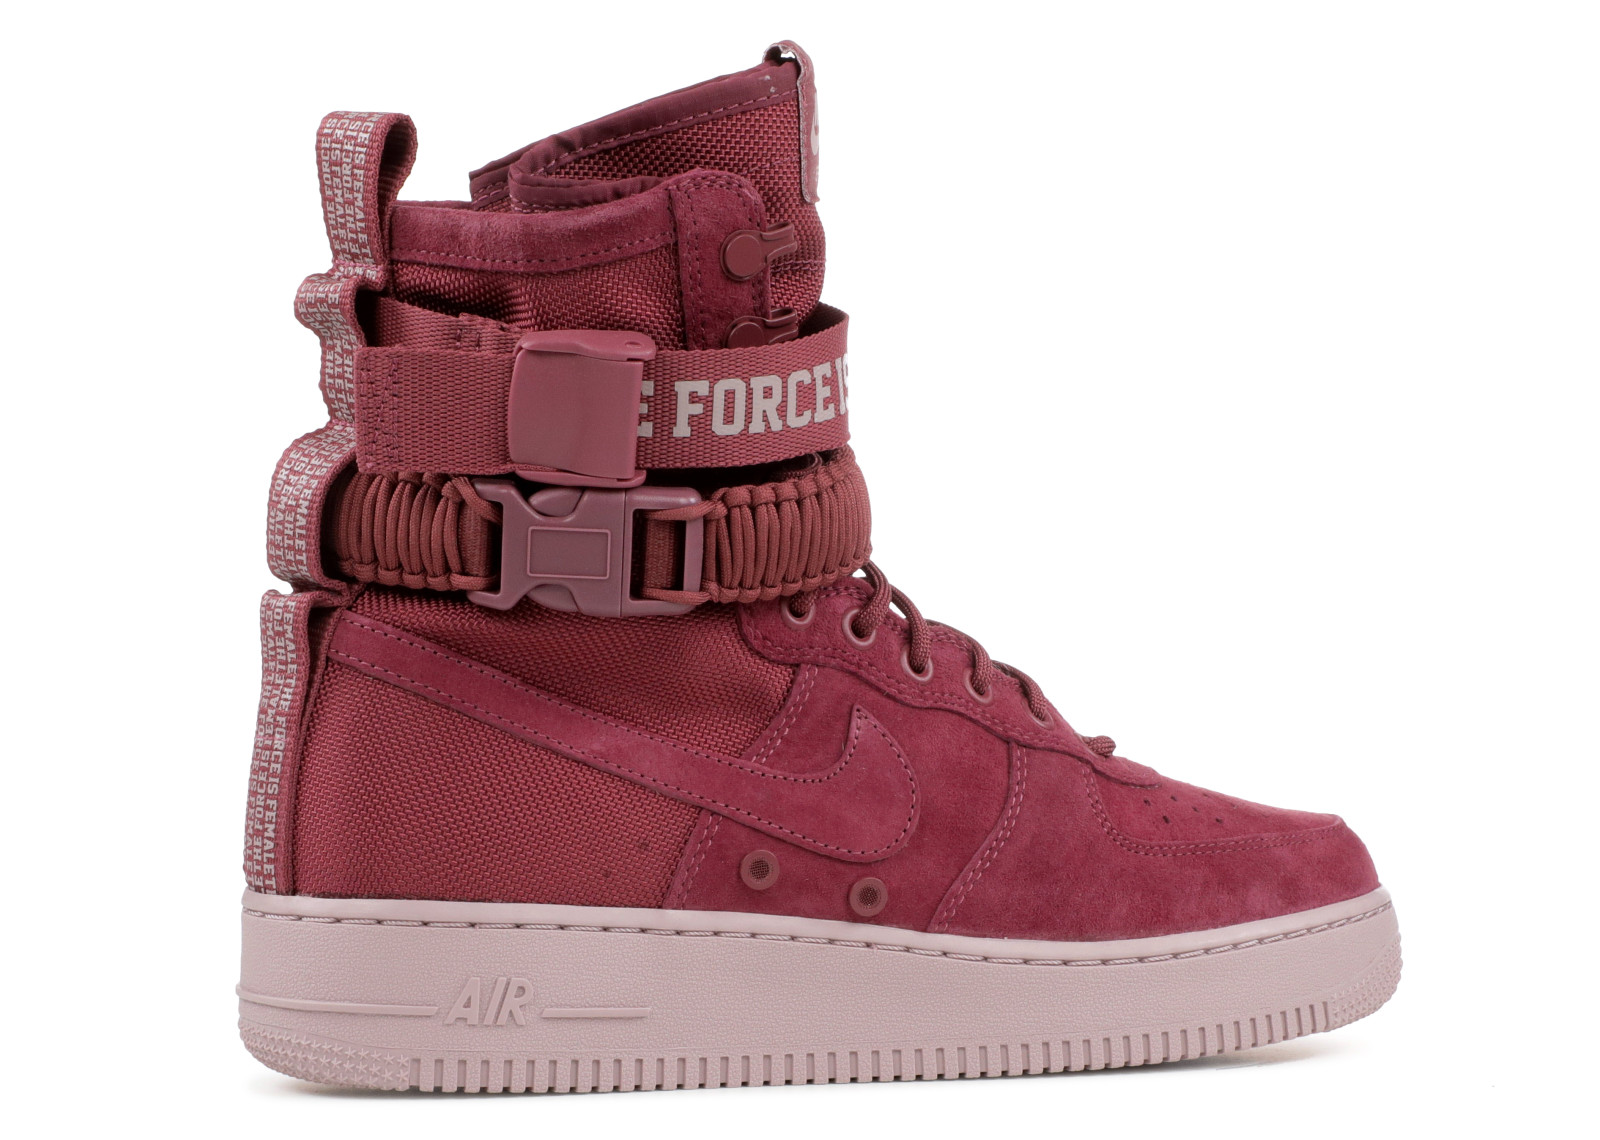 Nike Air Force 1 Special Force Vintage Wine Womens Boots AJ1700 600